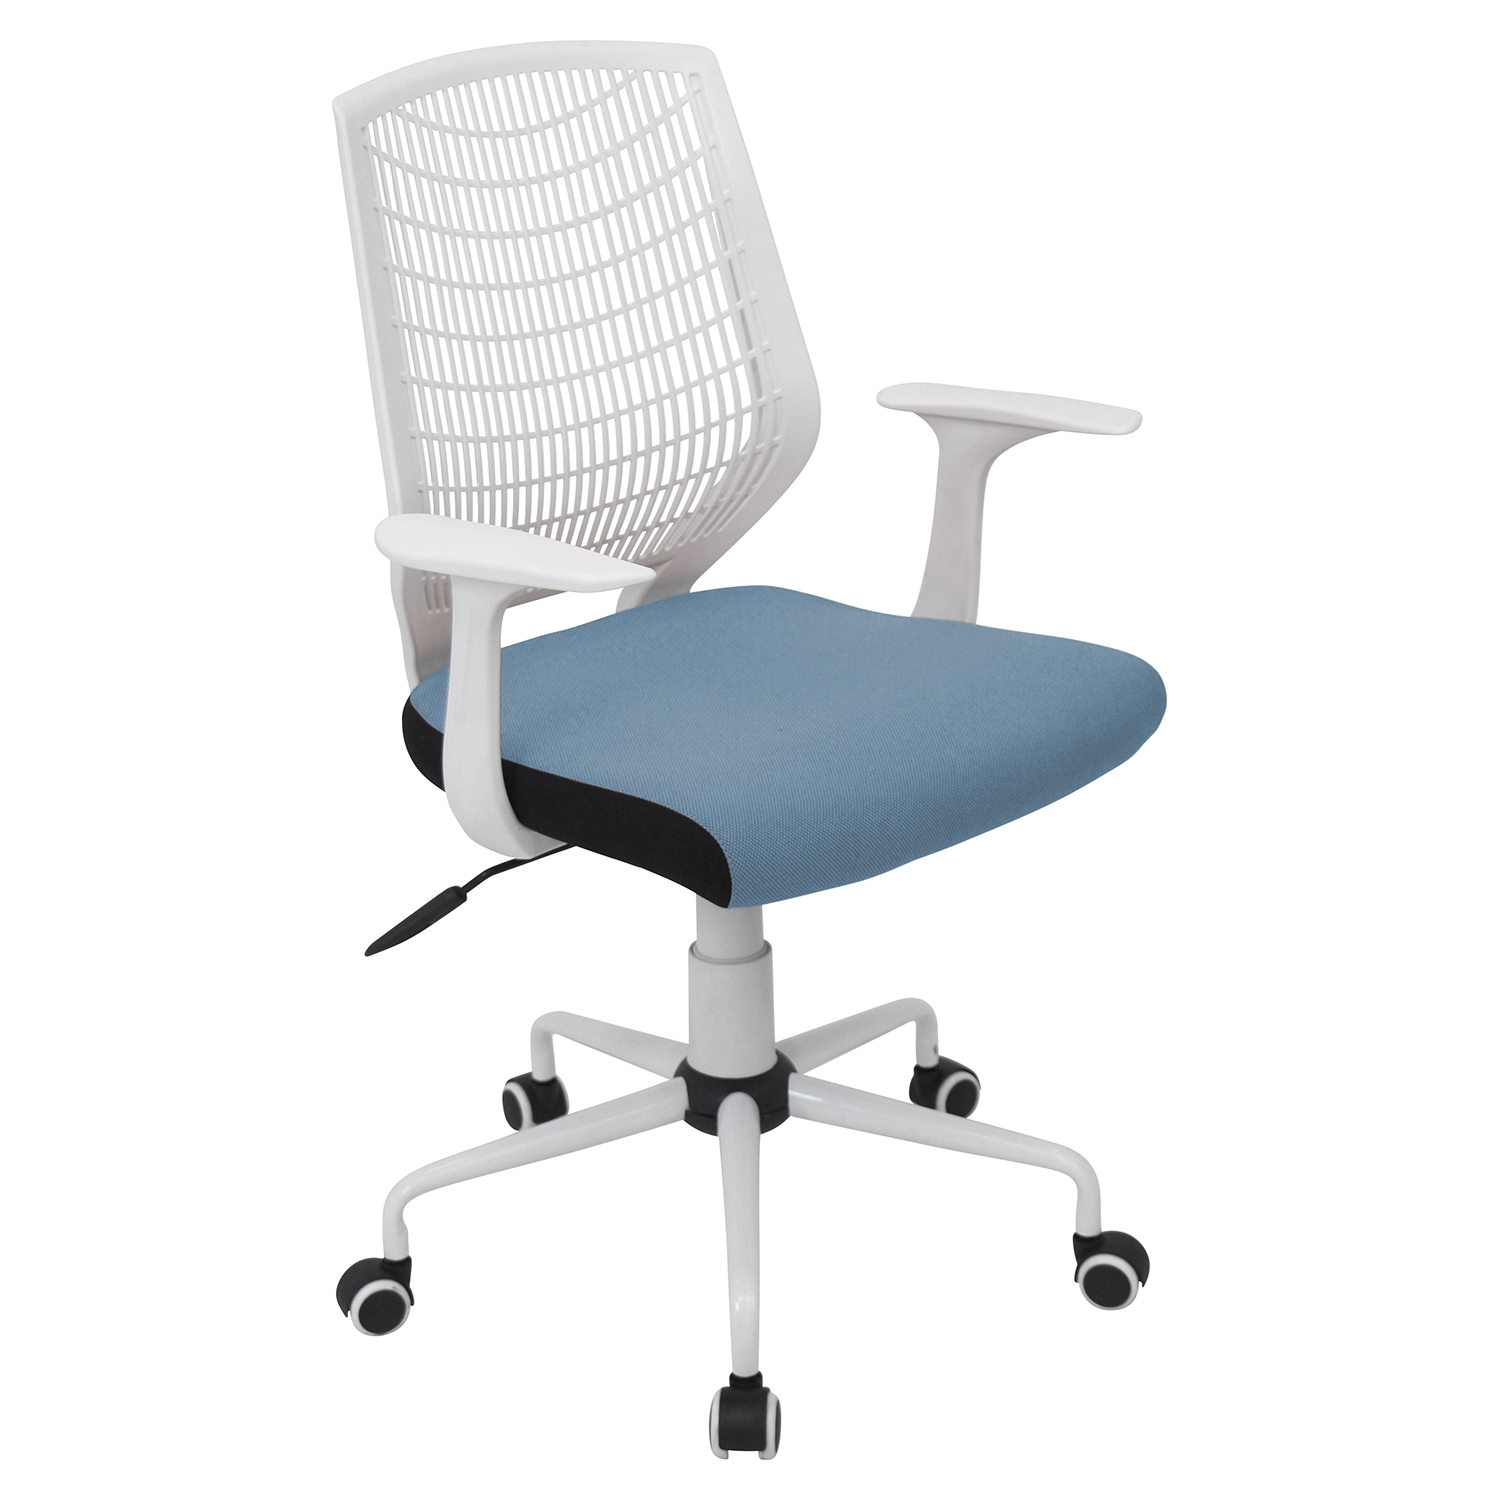 Network Height Adjustable Office Chair - Swivel, White, Smoked Blue